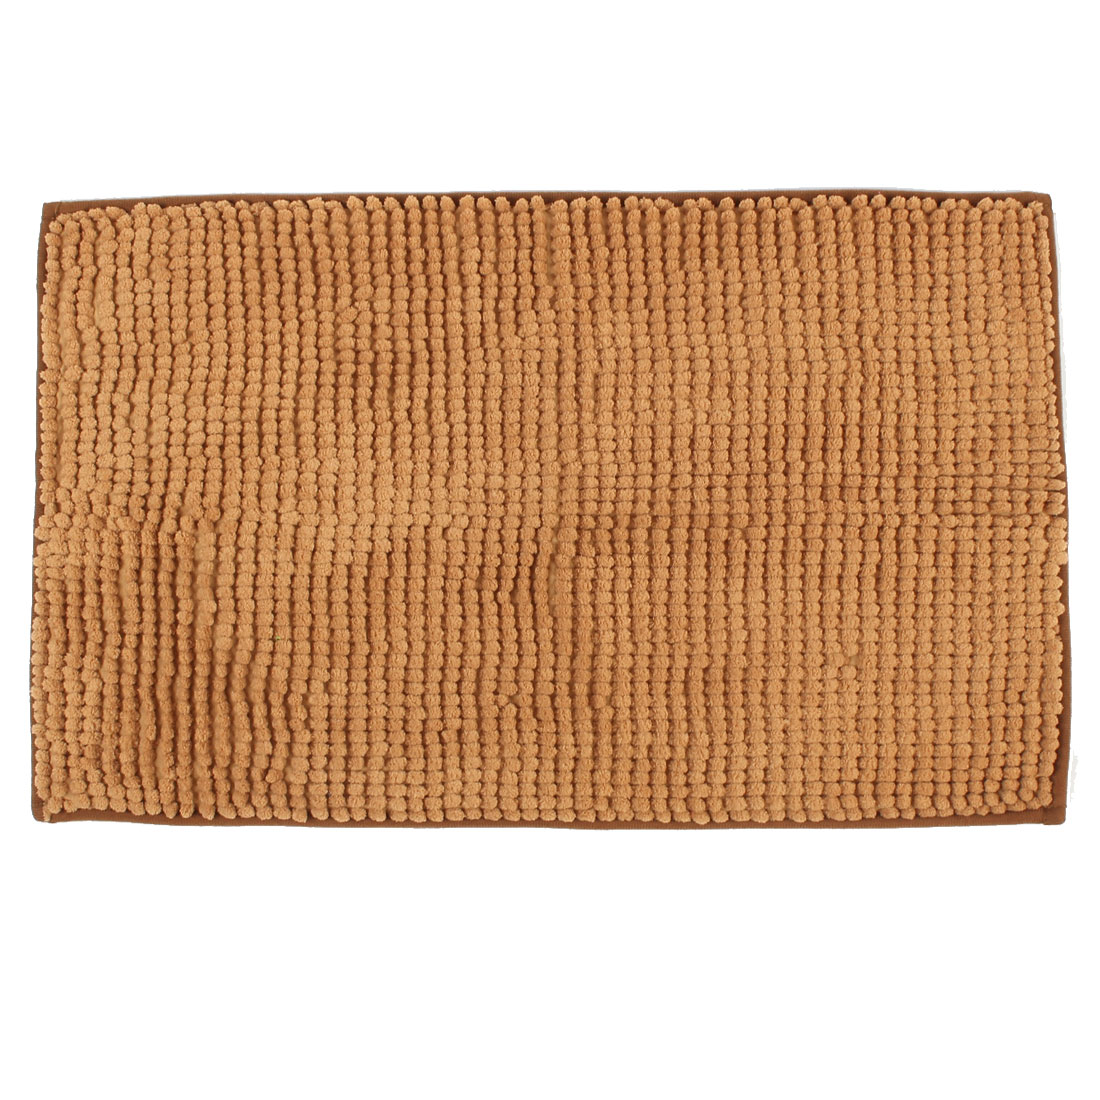 Gym Bathroom Home Soft Non Slip Absorbent Shower Bath Mat Rugs Light Brown 20 x 32 Inch